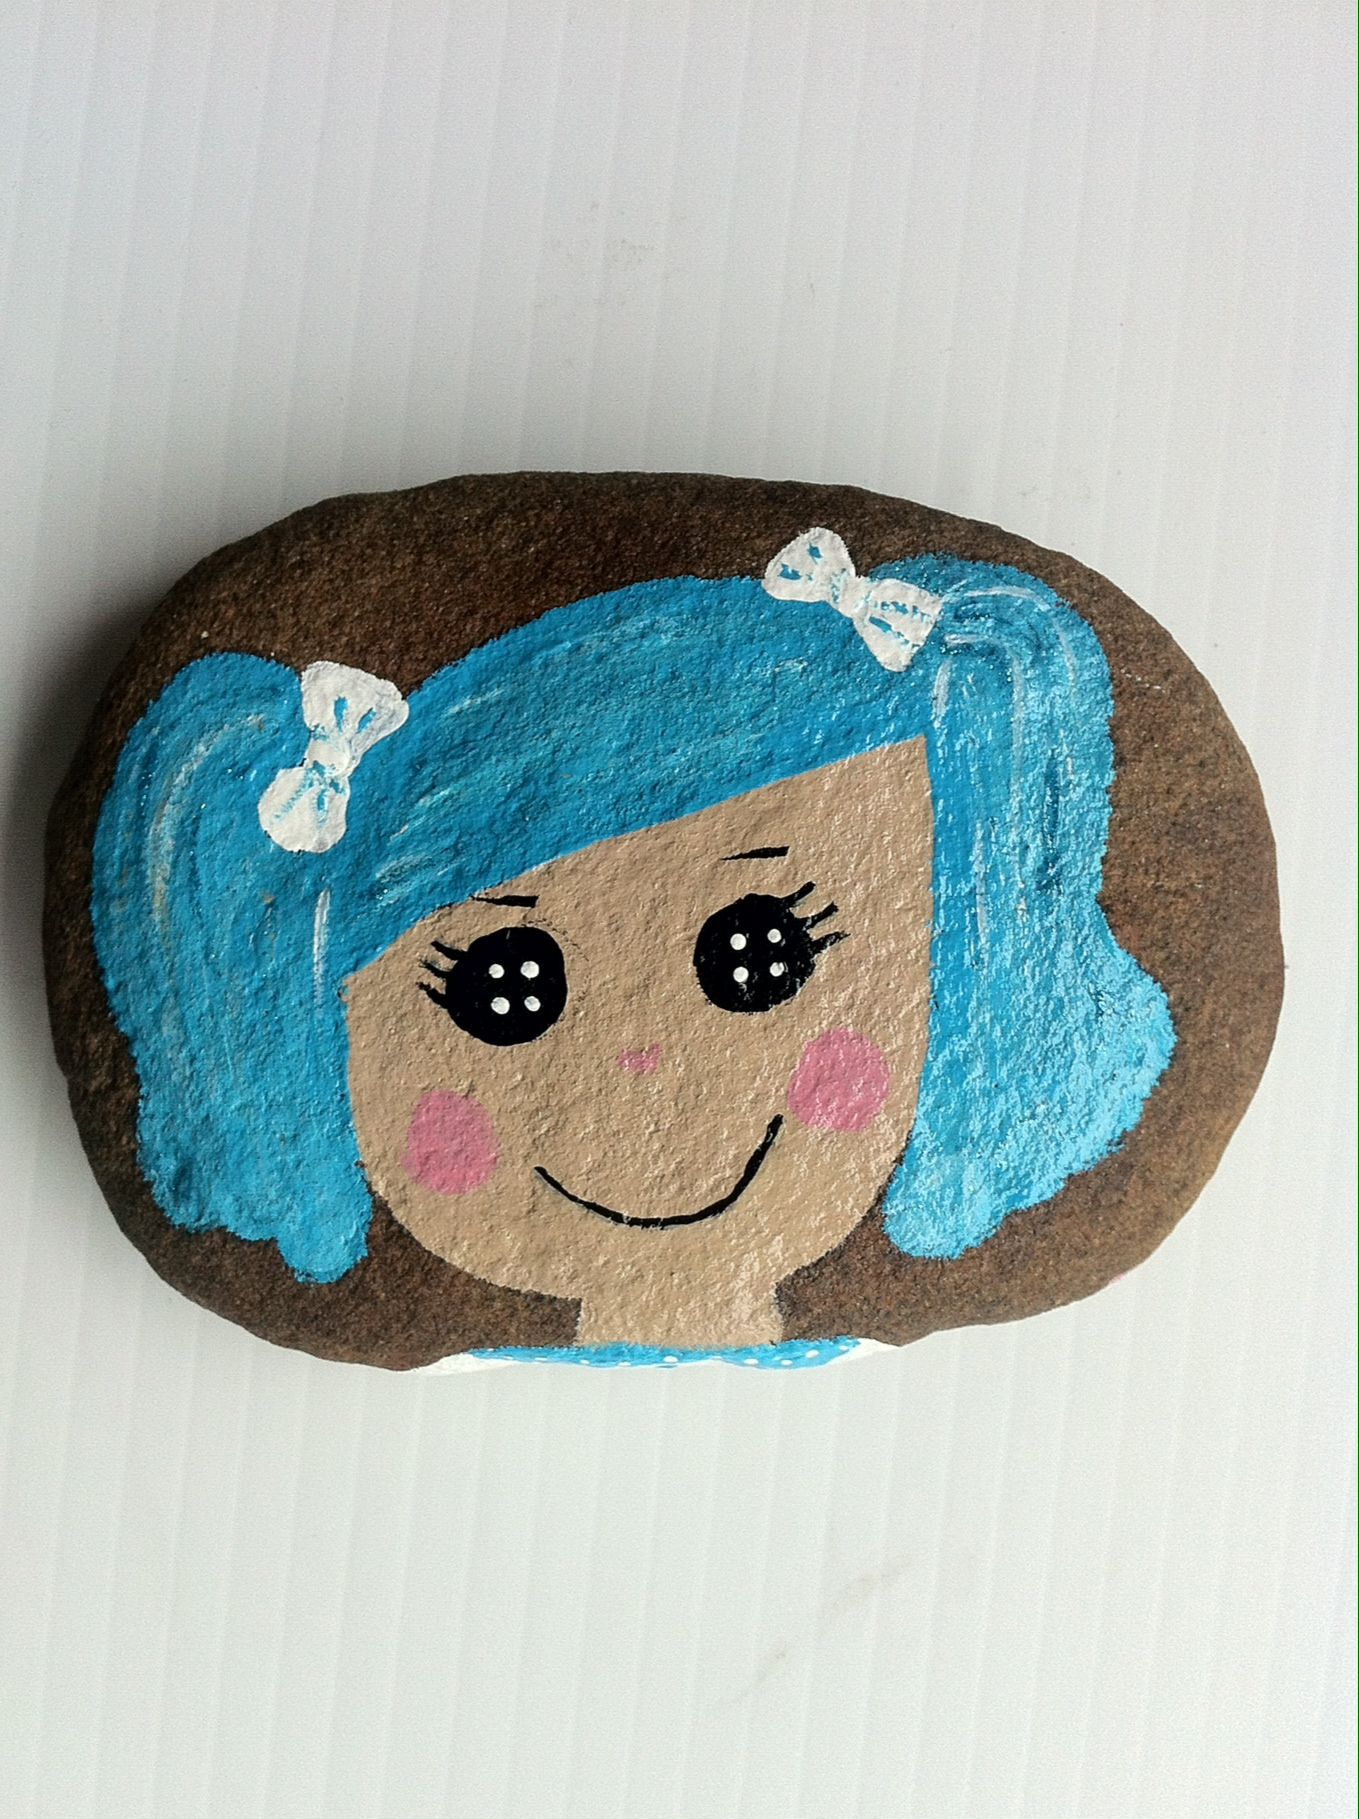 Lalaloopsy  (mittens) painted rock